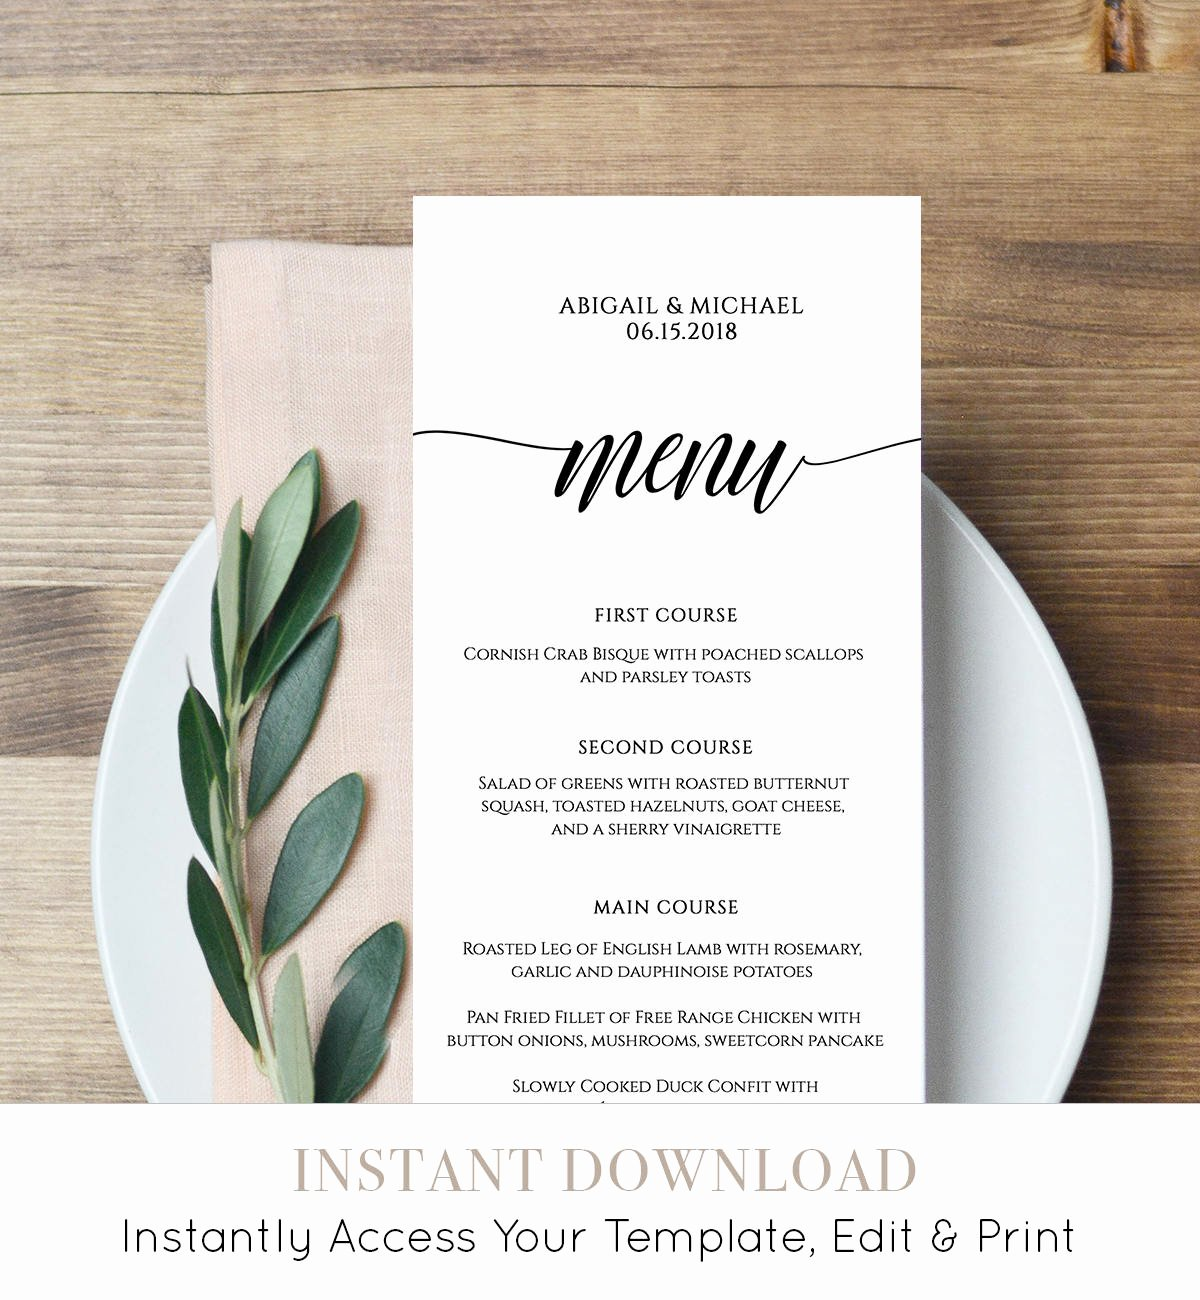 Wedding Menu Card Template Luxury Menu Card Template Rustic Dinner Menu Wedding Menu Card